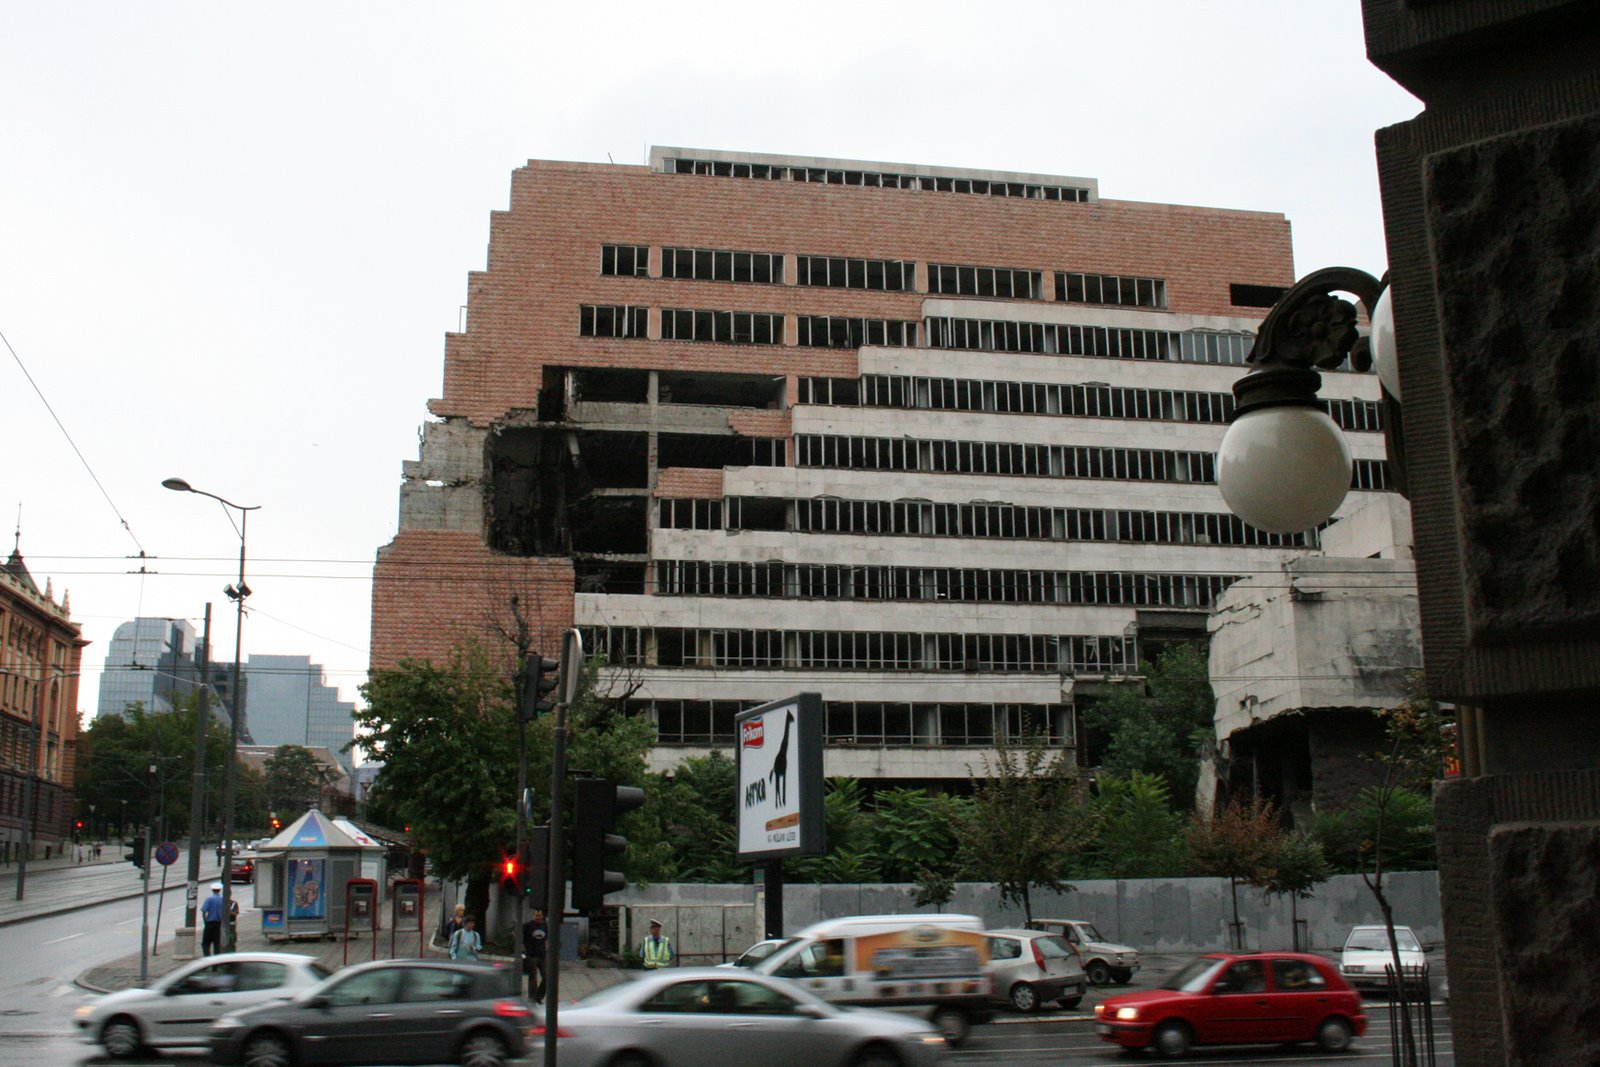 serbia-belgrade-bomb-damage-building-in-beograde